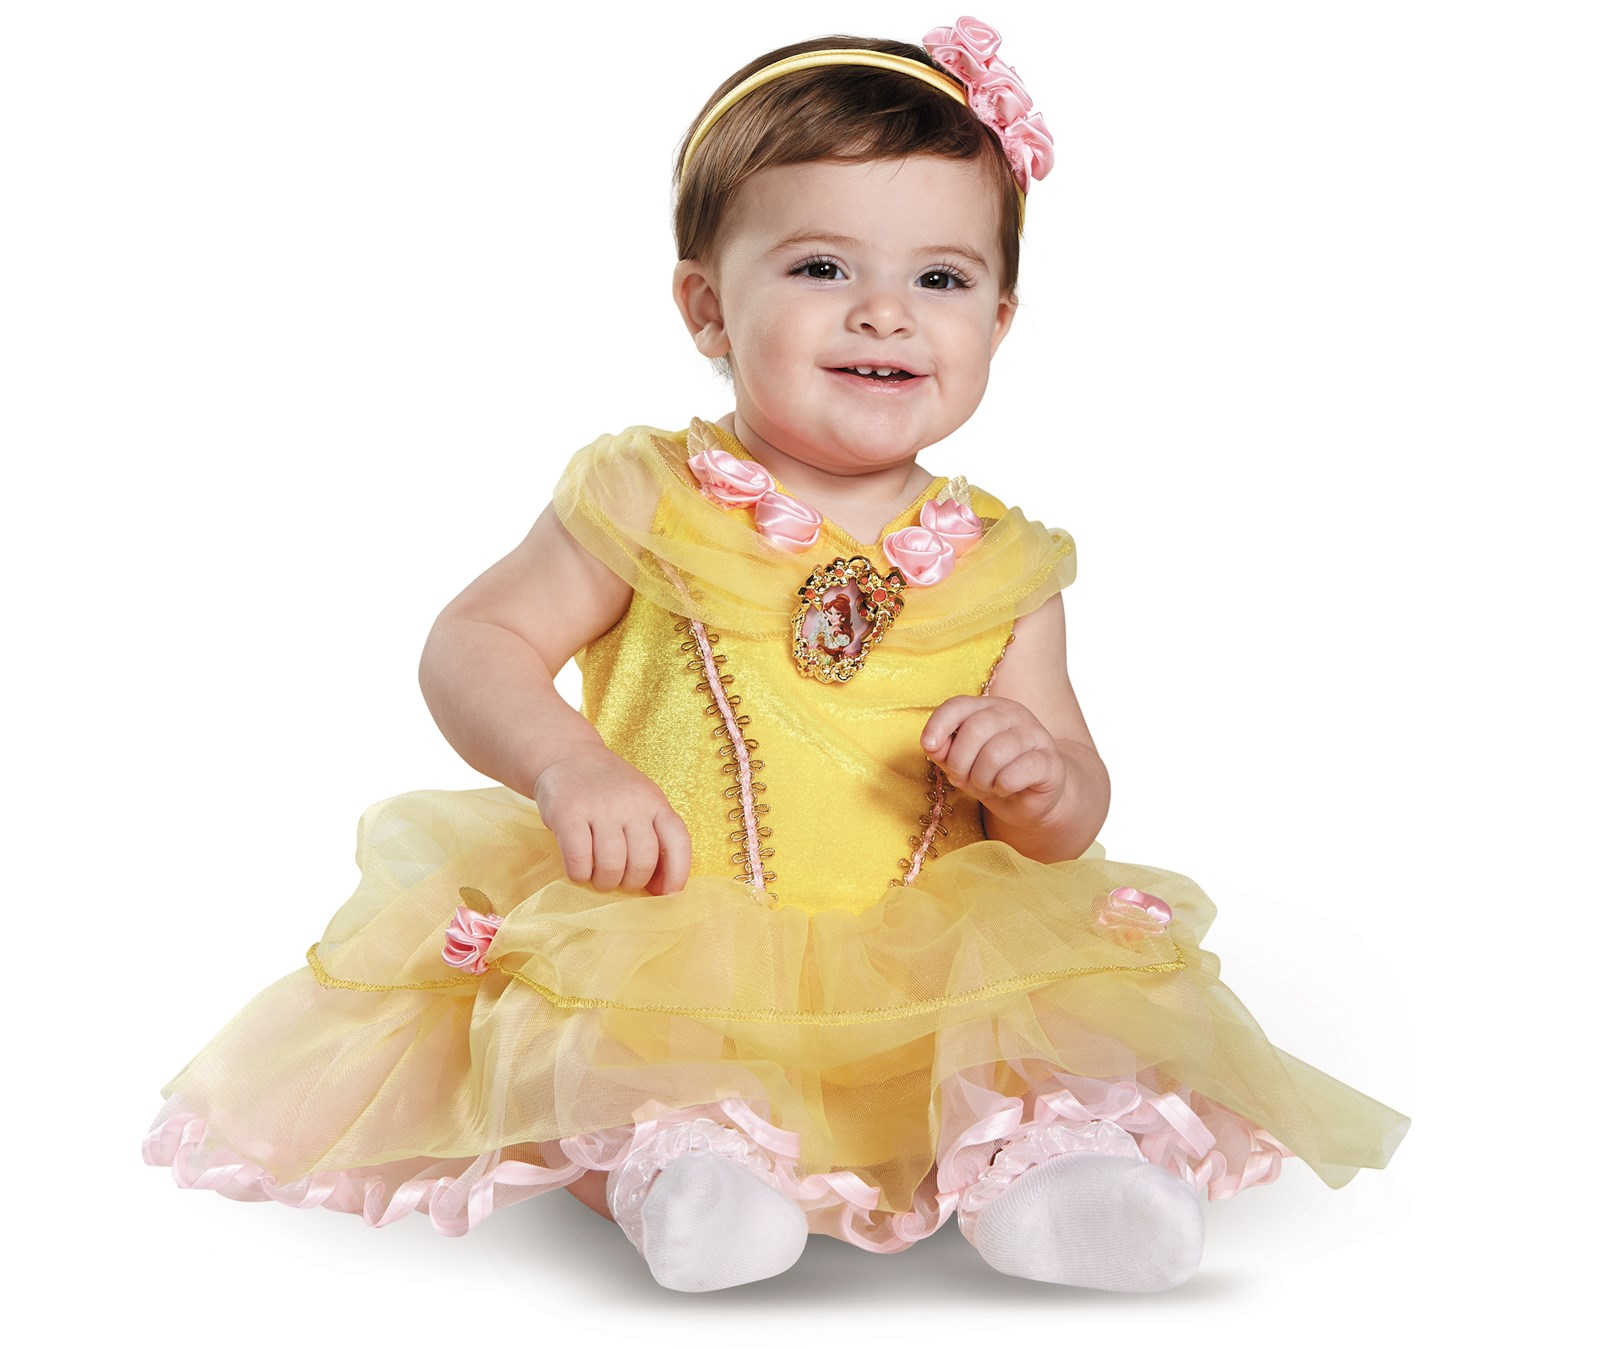 Beauty and the Beast - Belle Infant Costume   BuyCostumes.com